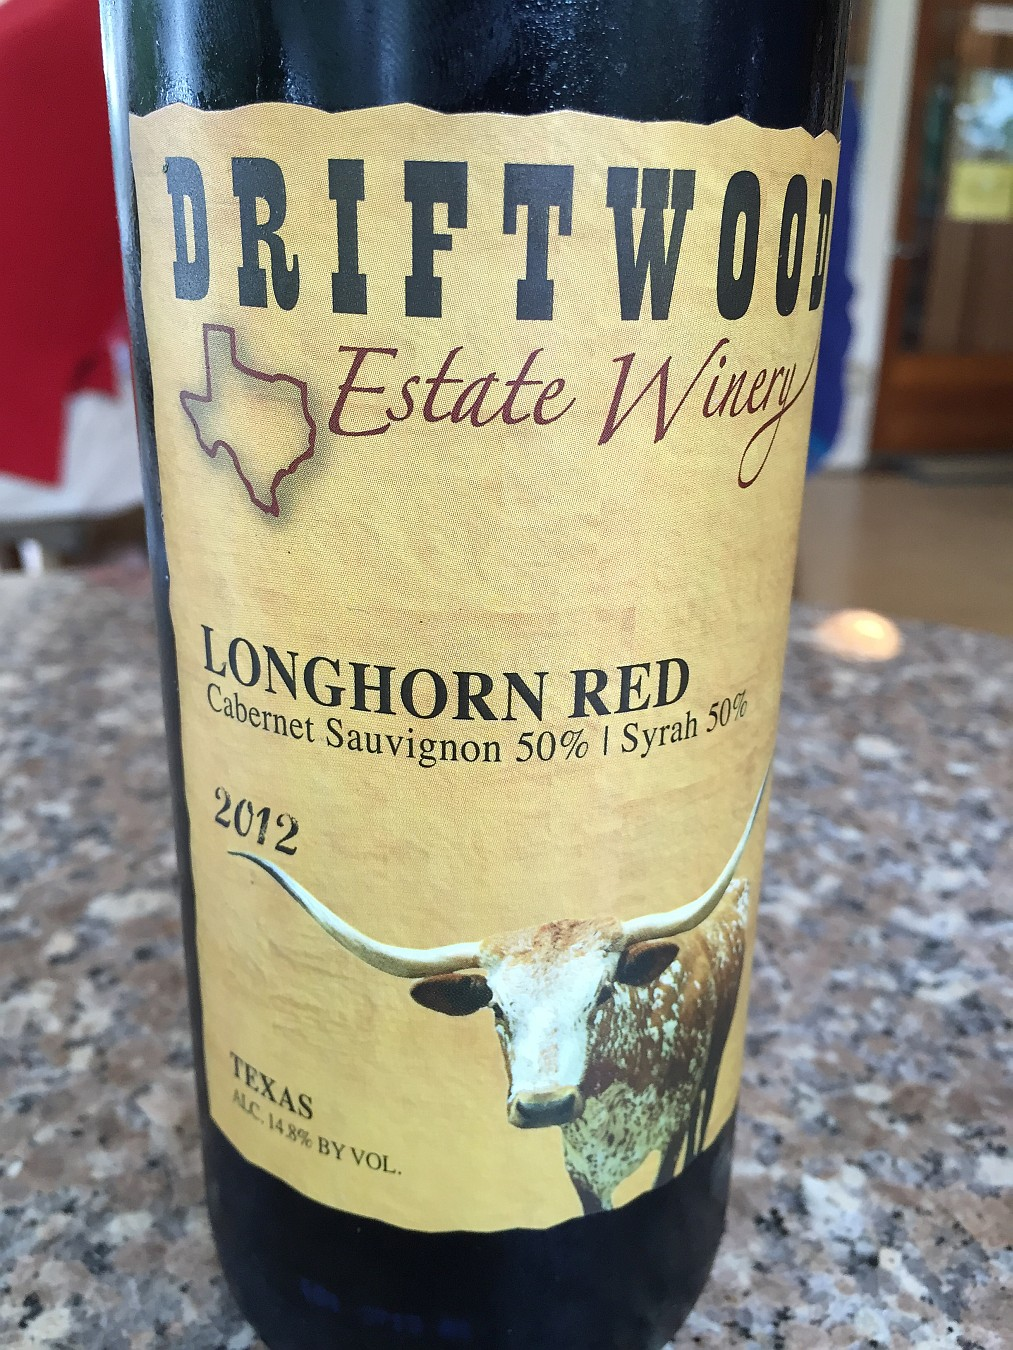 Driftwood Estate Winery Longhorn Red 2012